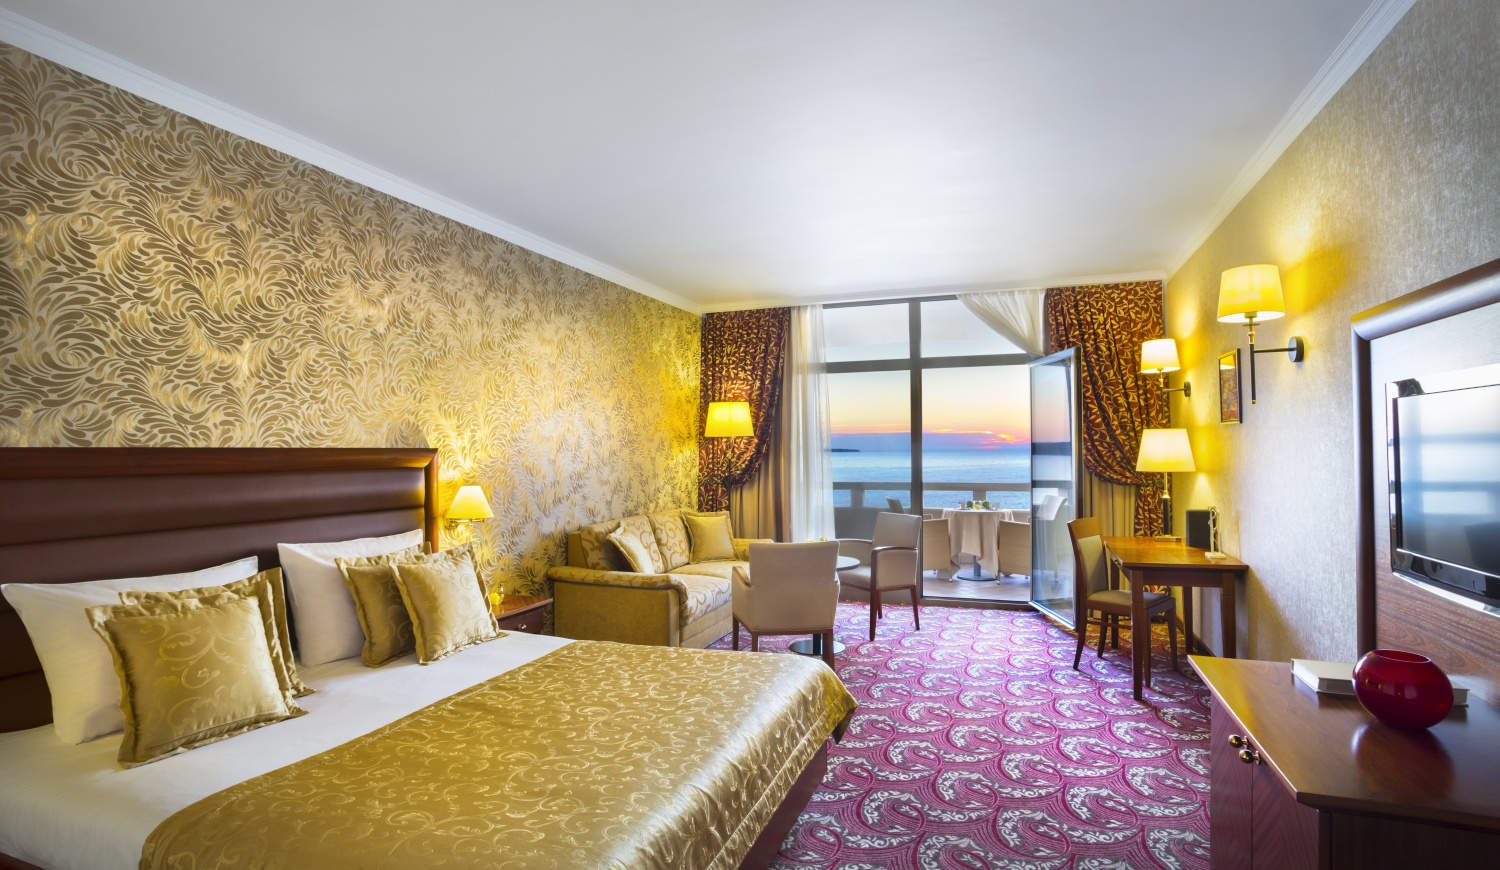 H Top Hotels amp Resorts Group  Cataluña Resorts